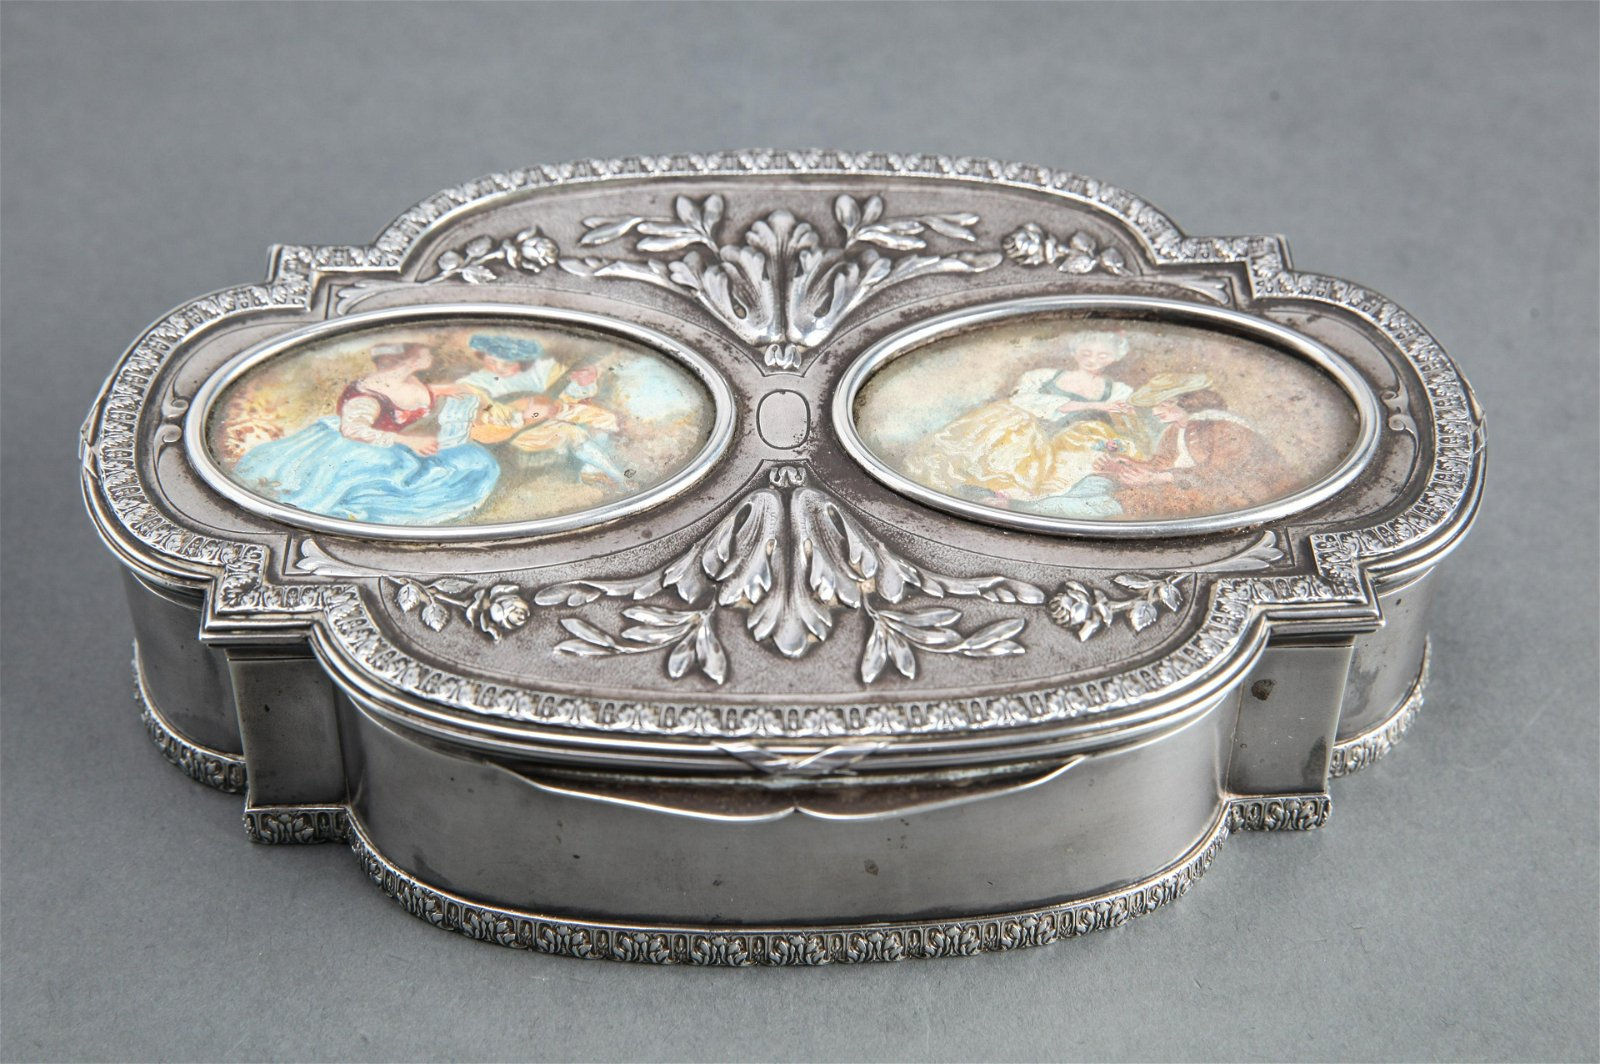 French Silver Vanity Box w Hand-Painted Scenes